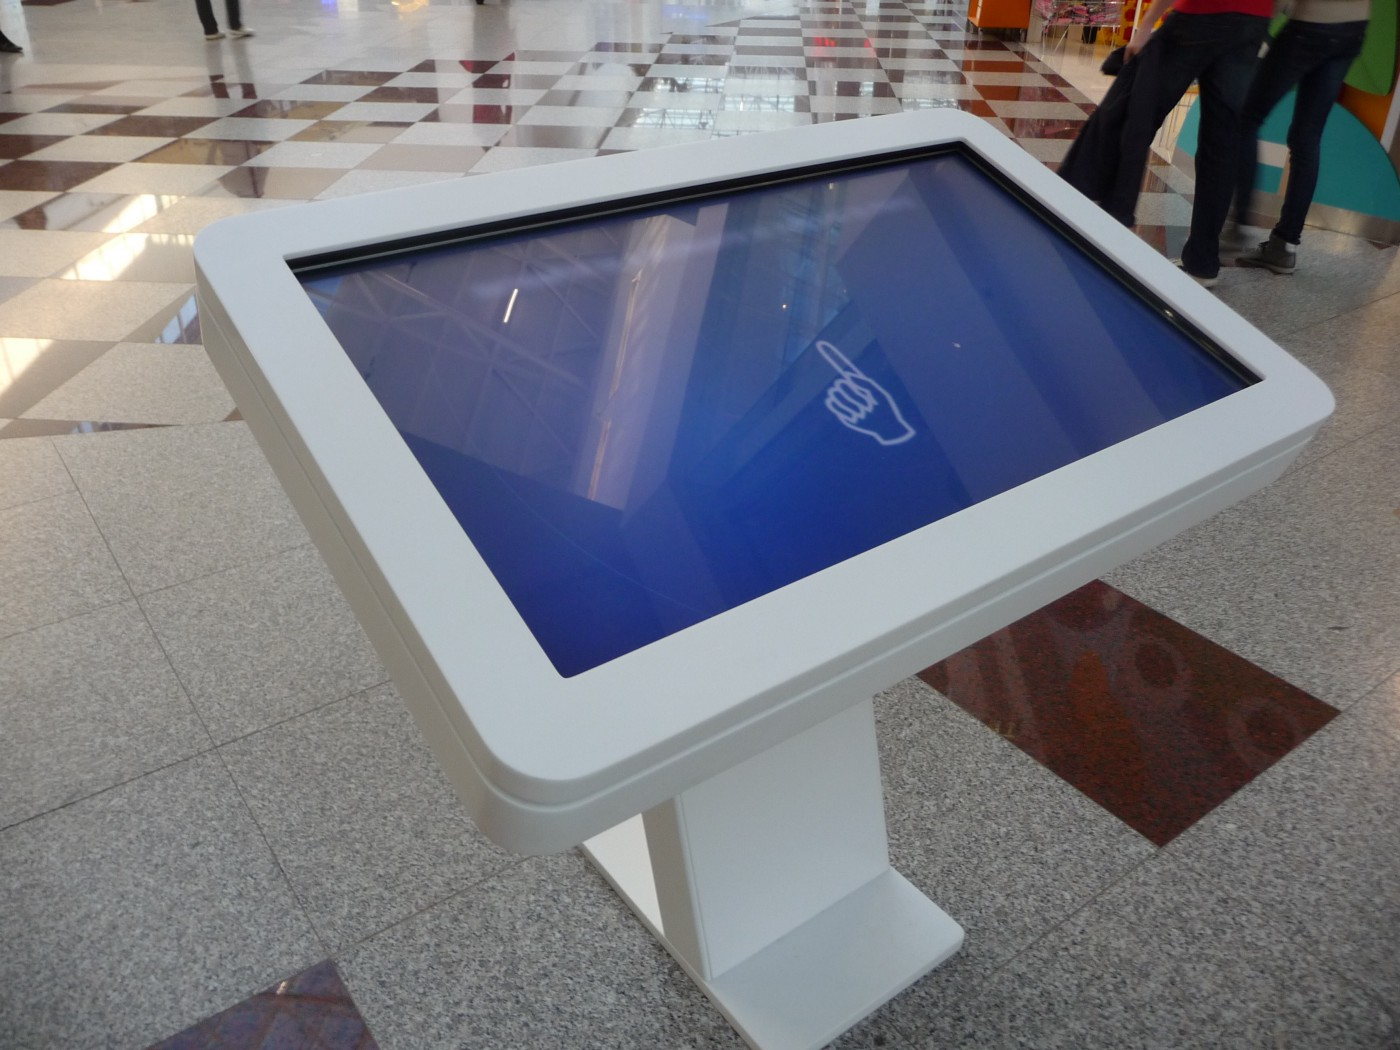 Interactive Touch Kiosk Display, image from: upload.wikimedia.org, by: Pavel Ševela / Wikimedia Commons